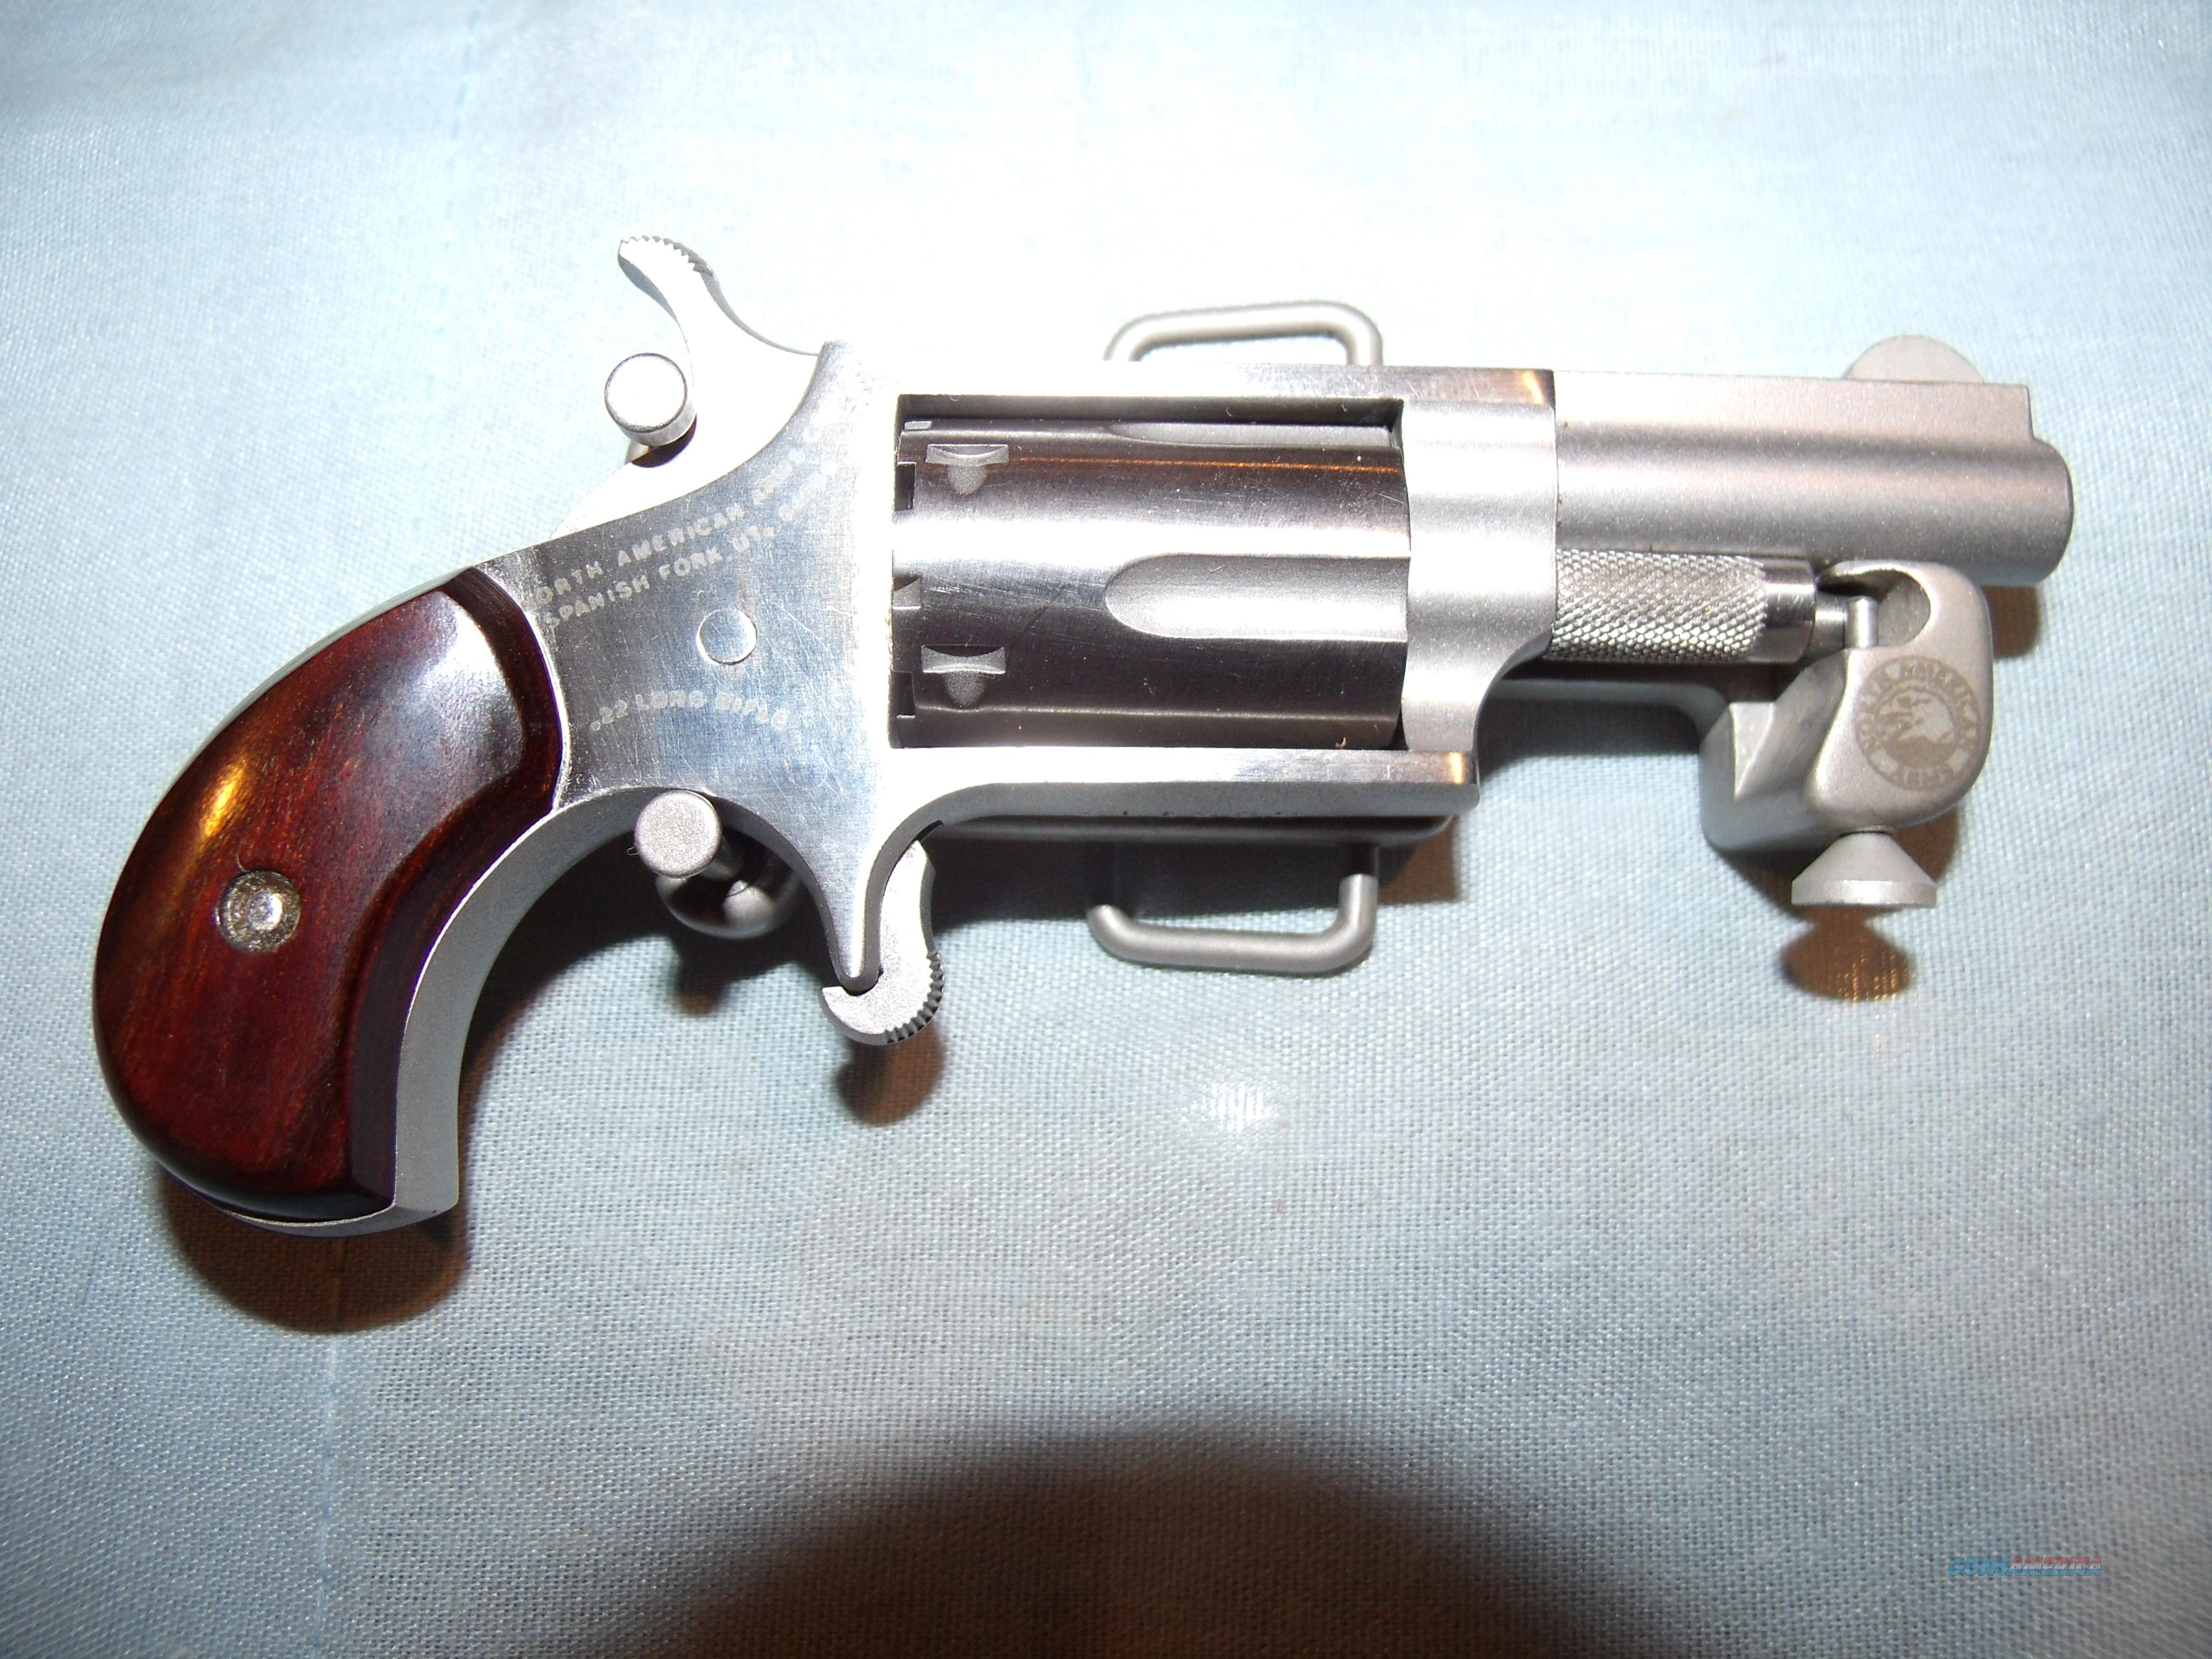 NORTH AMERICAN ARMS  .22LR with BELT  BUCKLE  Guns > Pistols > North American Arms Pistols